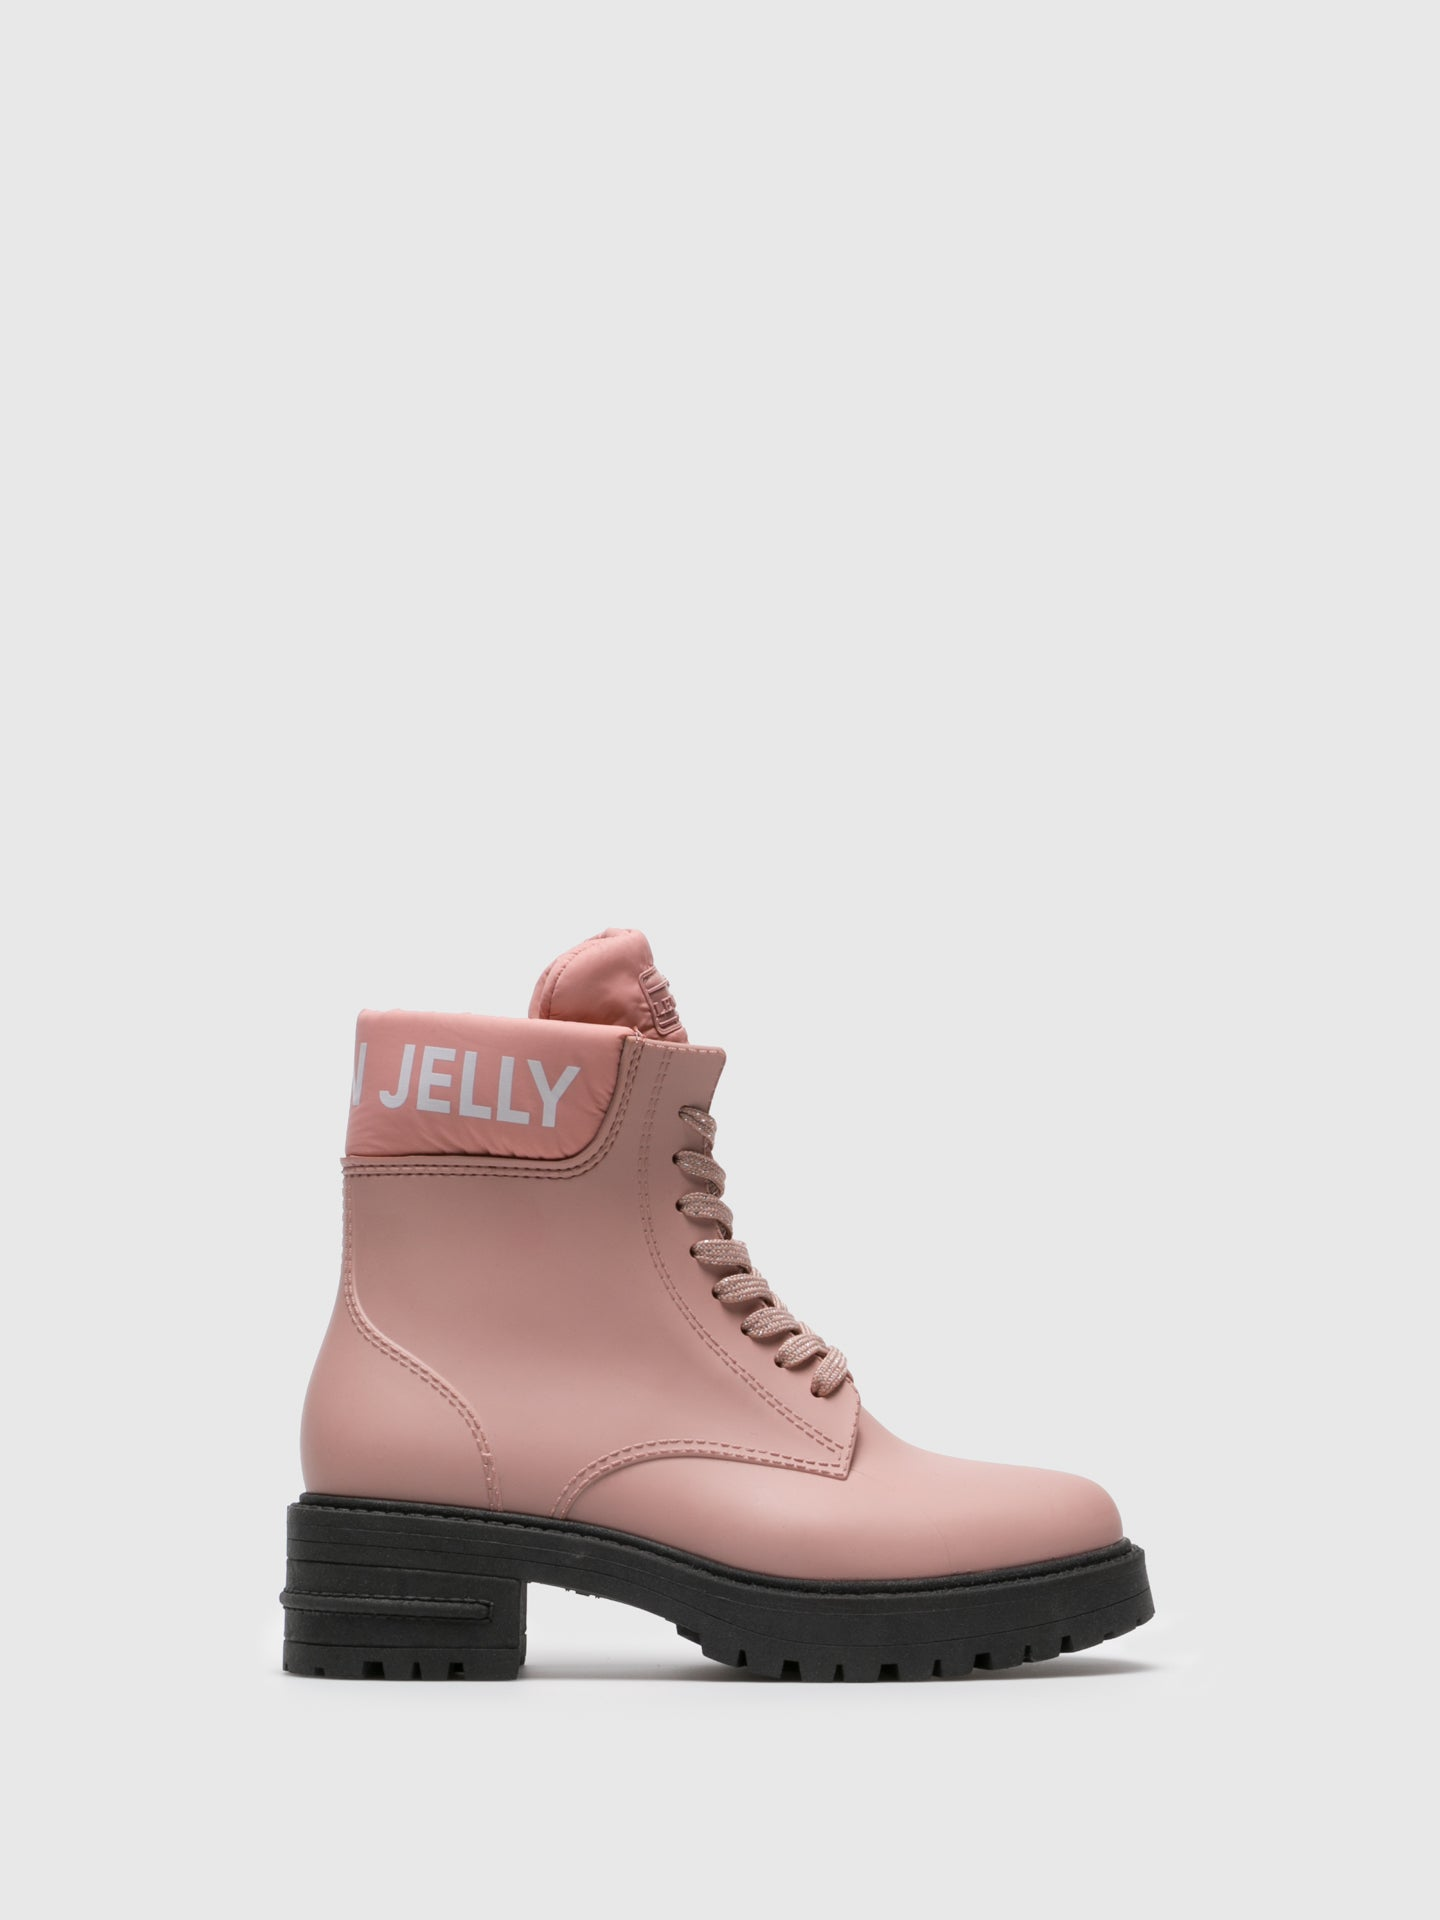 Lemon Jelly Stiefeletten mit Schnürung in Rose